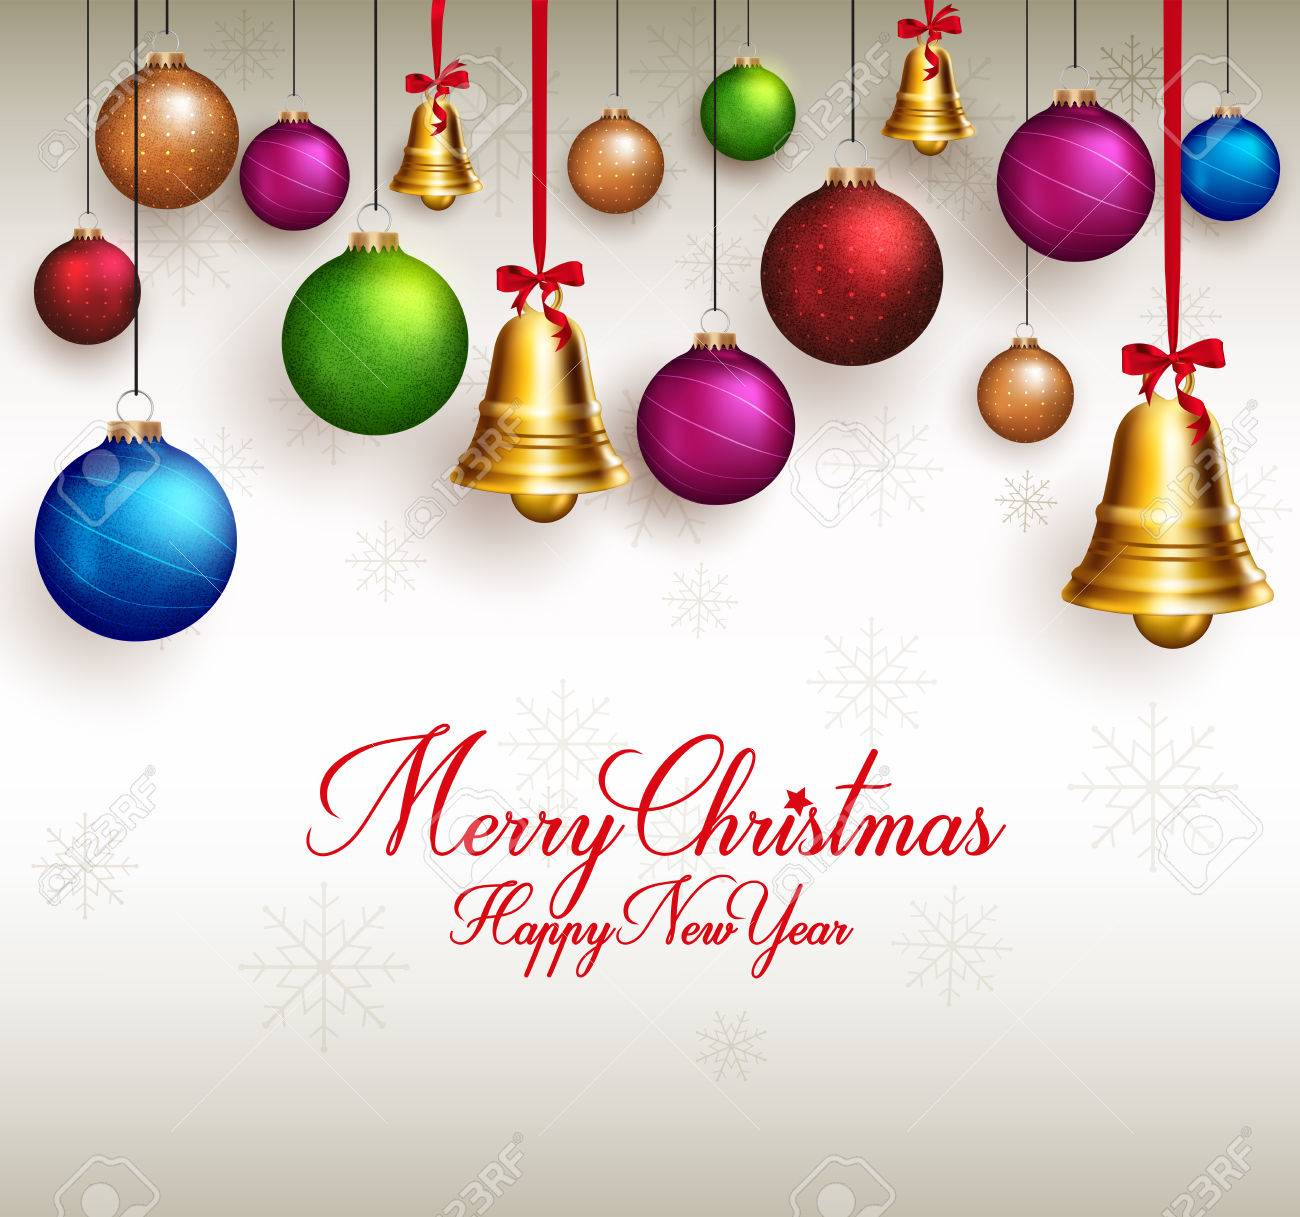 3d Realistic Merry Christmas Greetings With Hanging Colorful